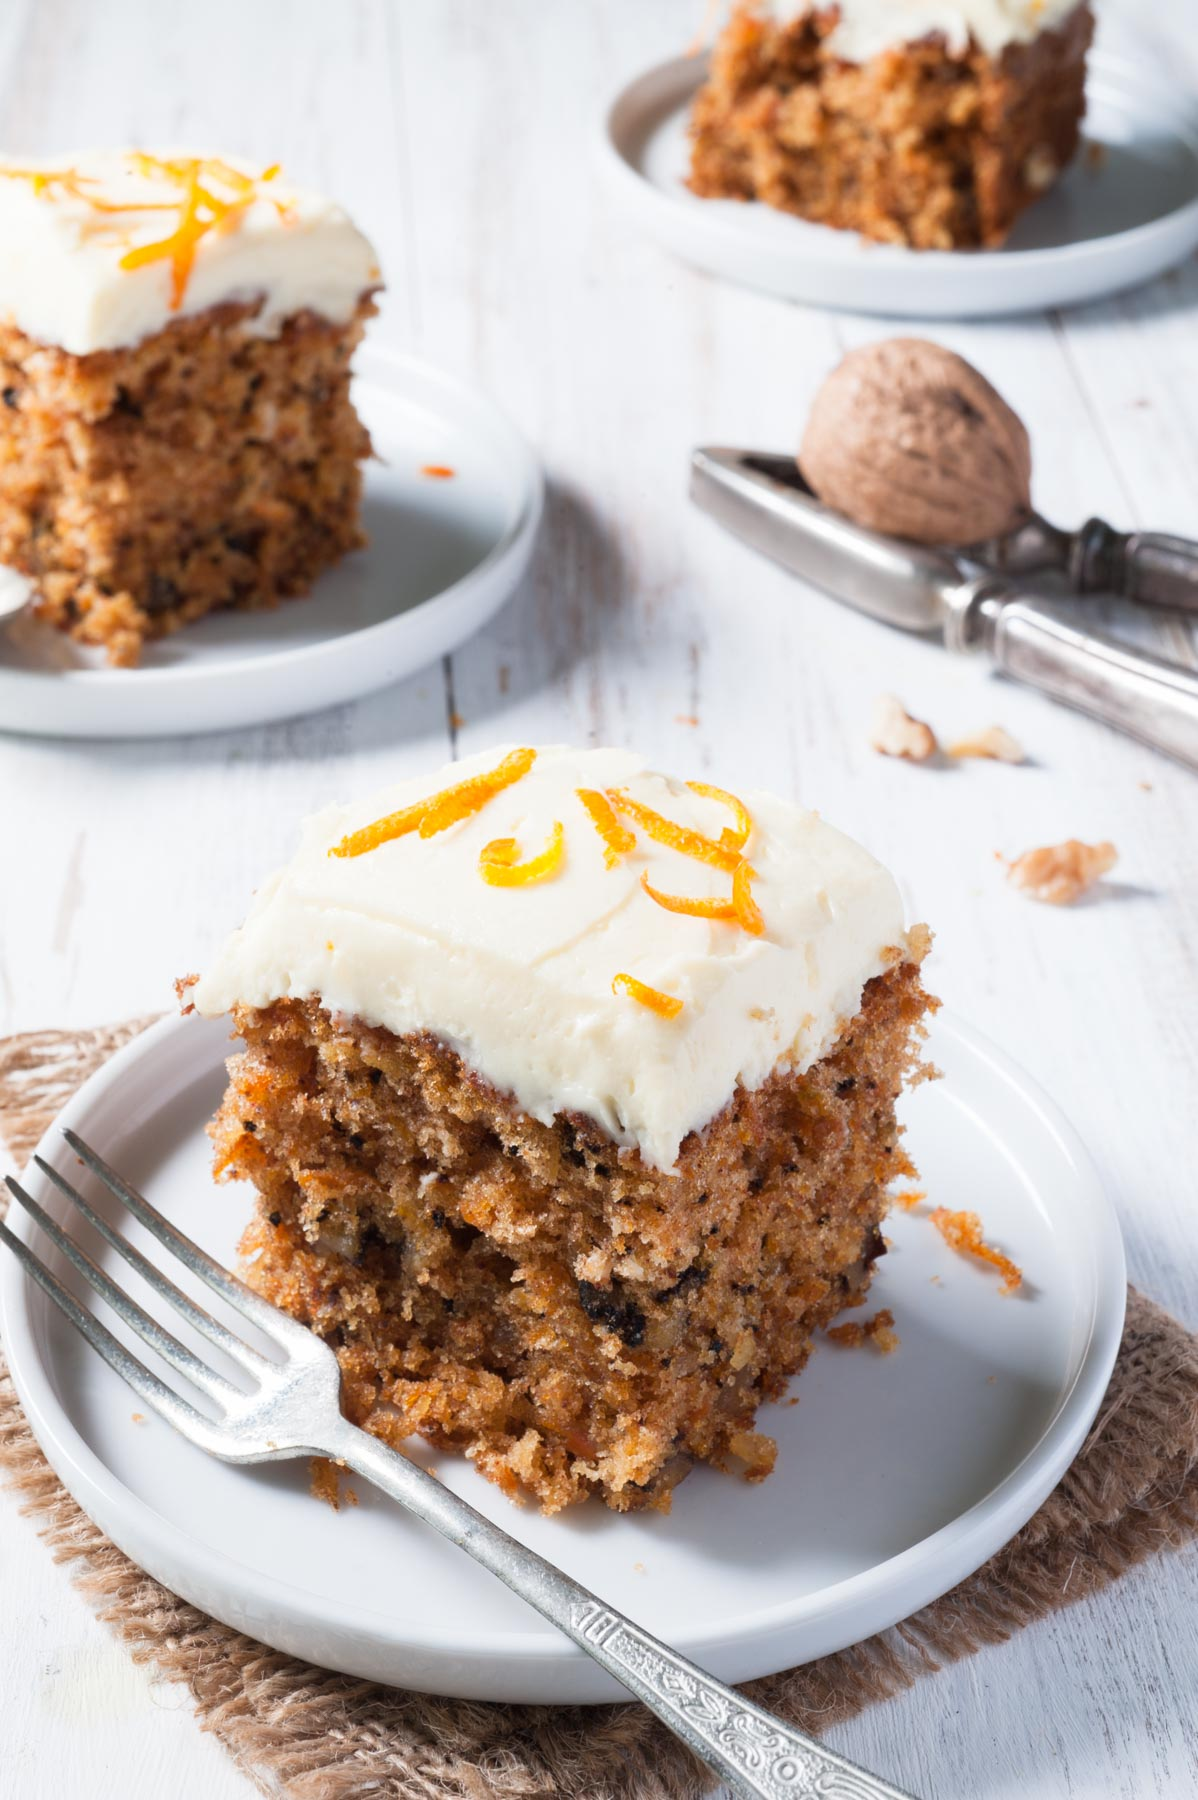 Carrot cake (cake aux carottes)